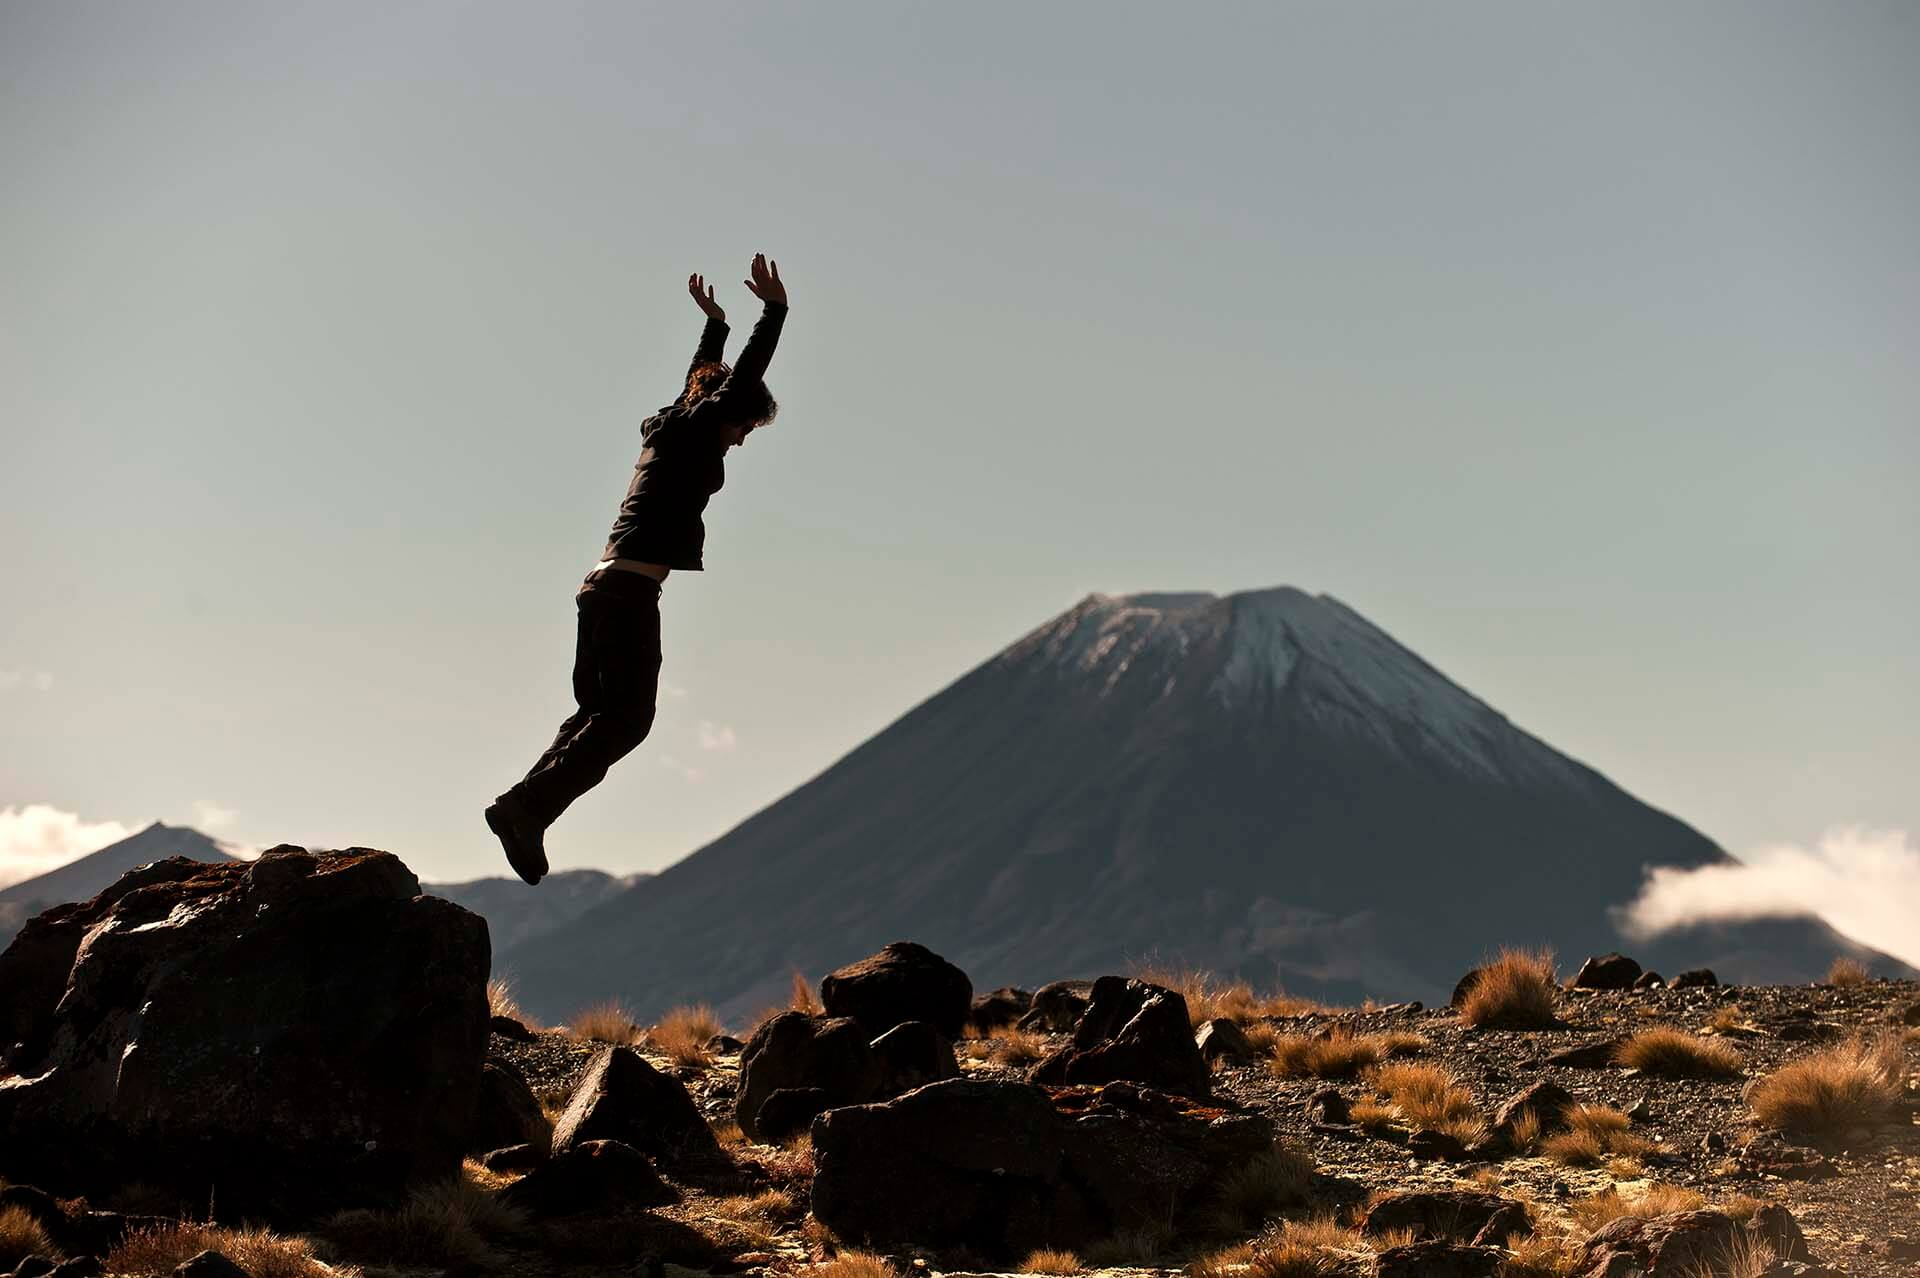 A happy Discovery Lodge guest jumping off a rock with Mt Ngauruhoe